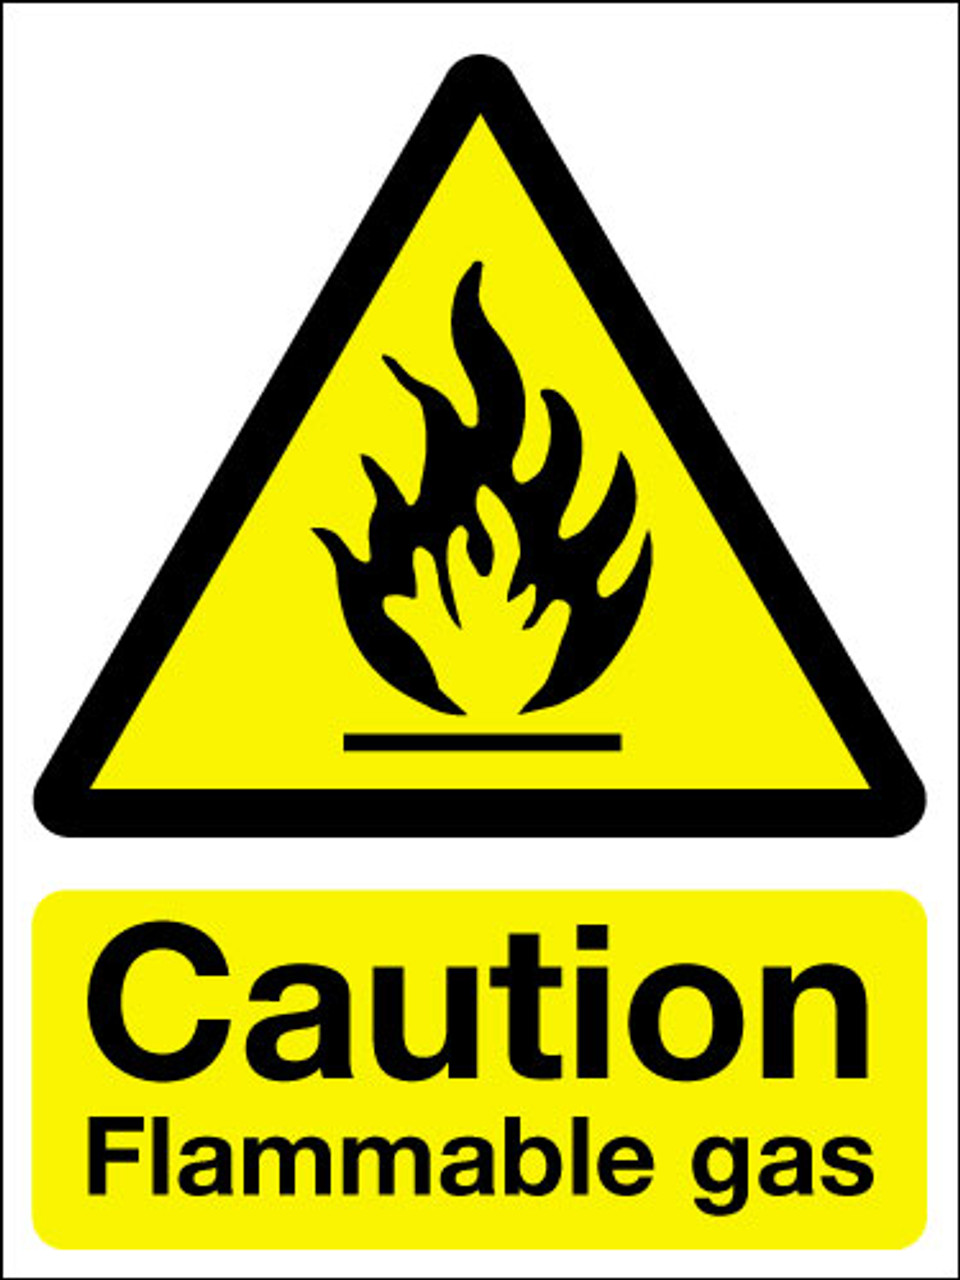 Caution flammable gas sign